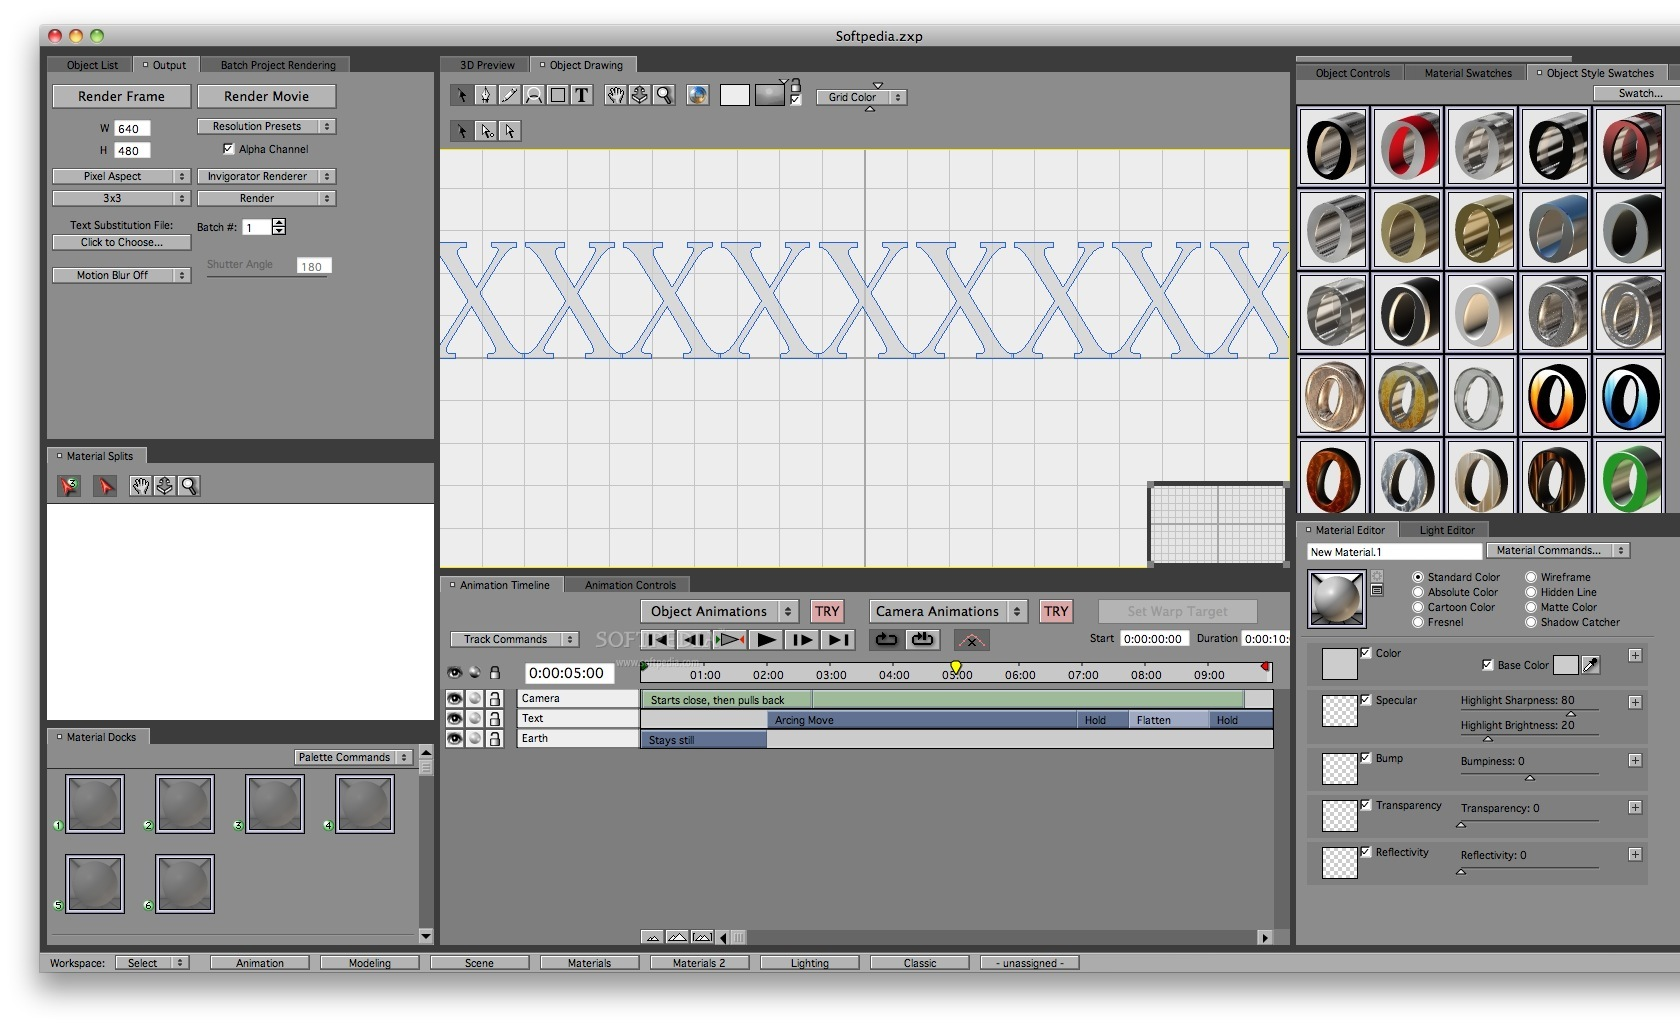 ProAnimator screenshot 3 - You can also draw objects.